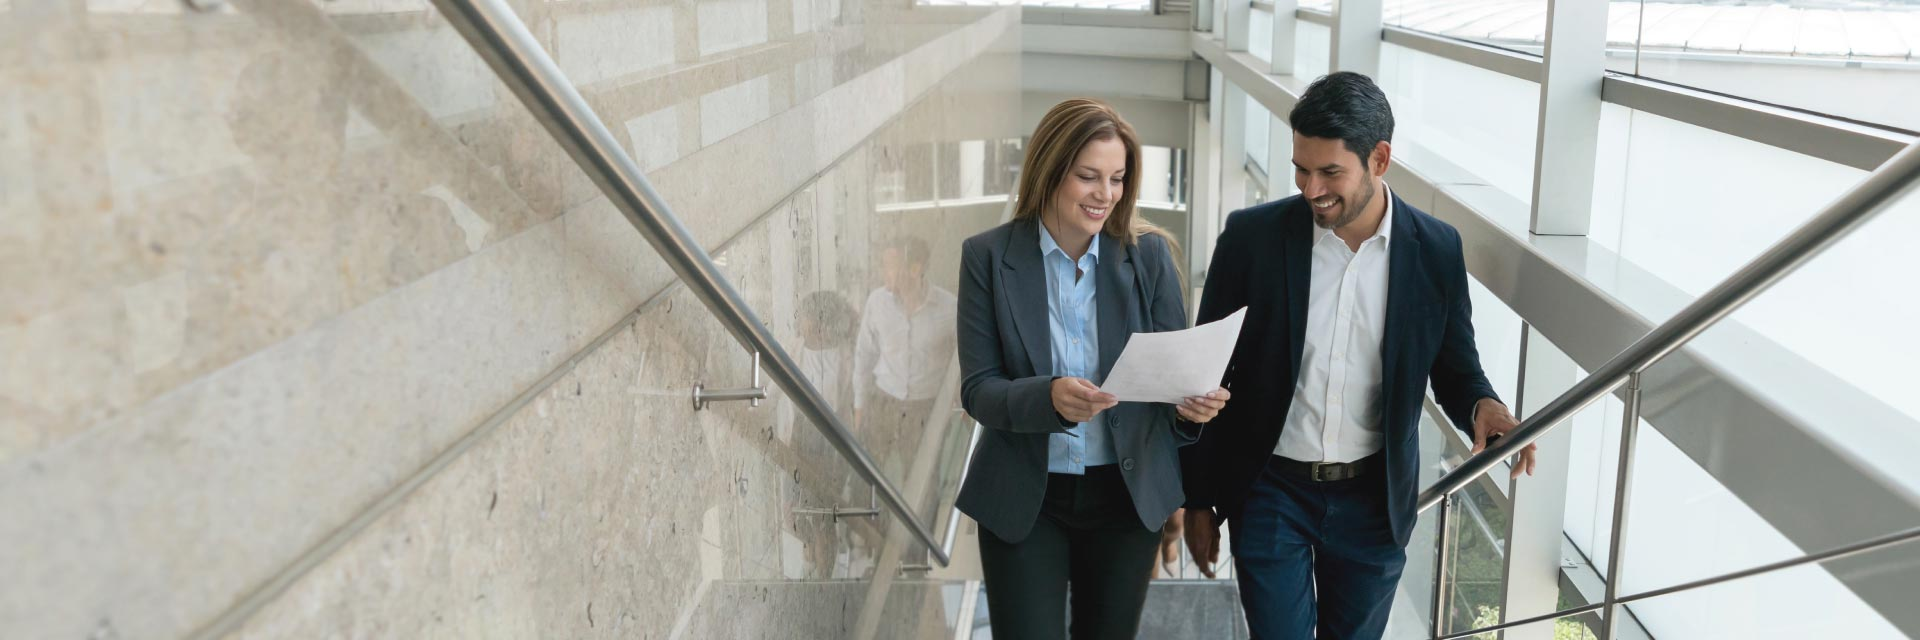 Two financial professionals review a document while walking up a flight of stairs.